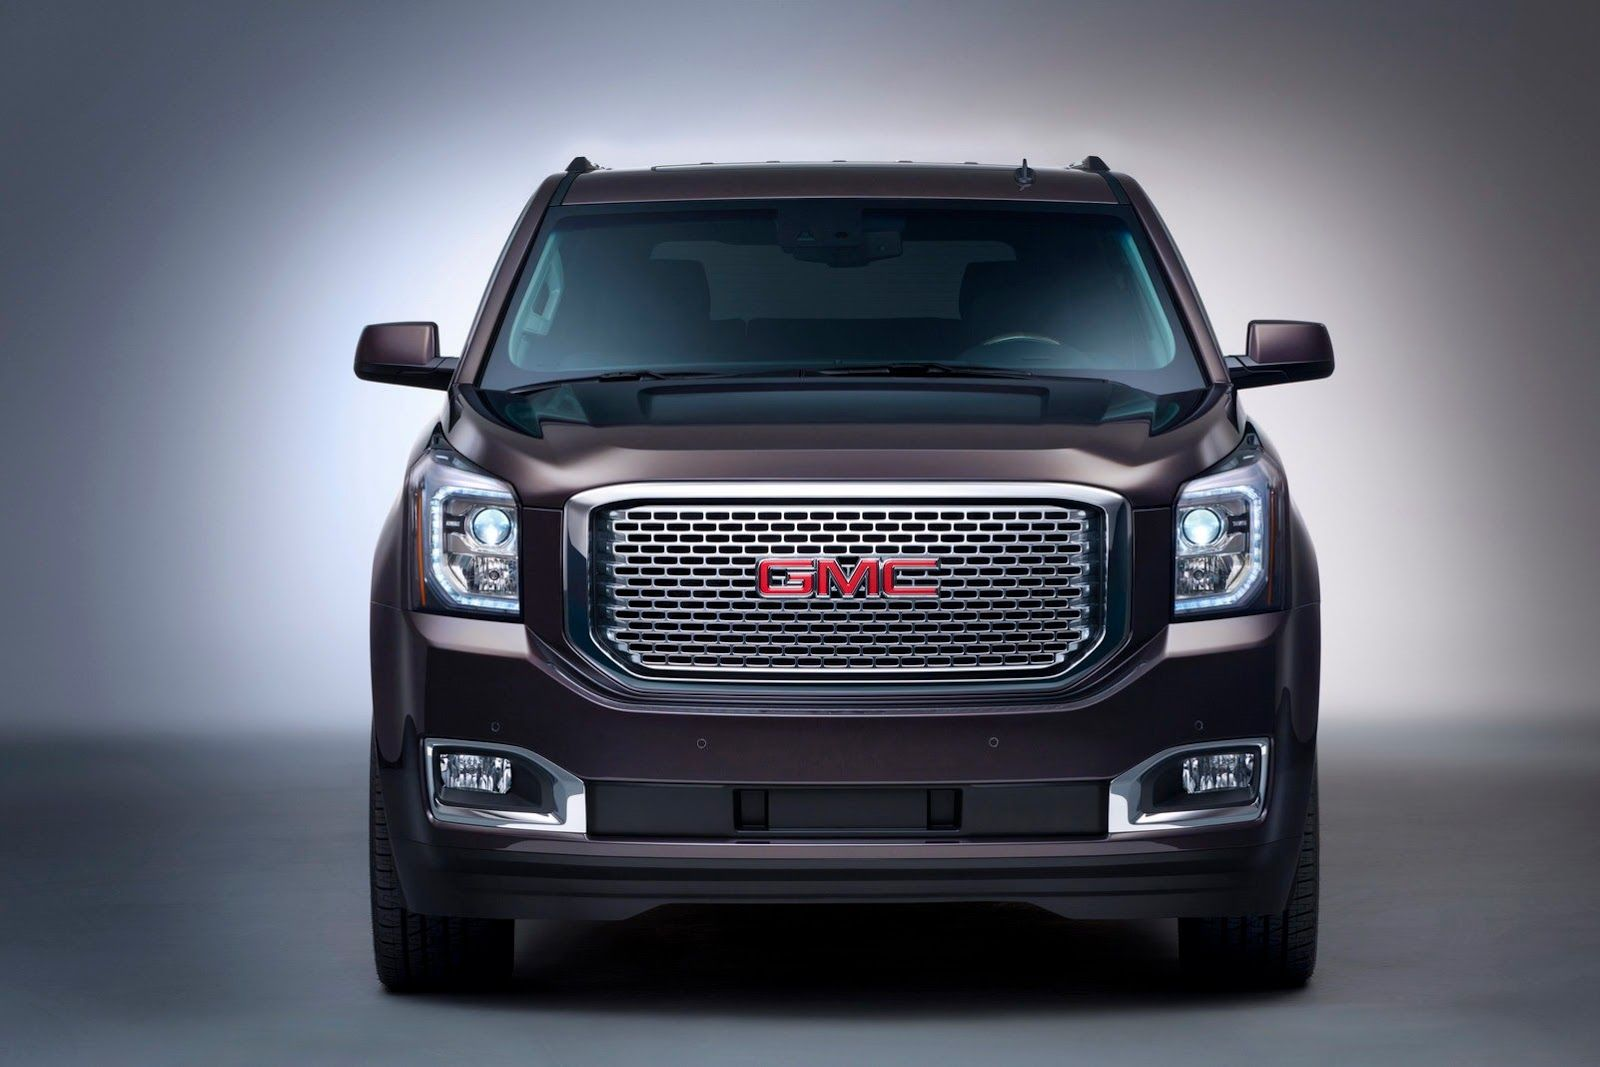 Gm s big daddy suvs 2015 chevrolet tahoe and suburban and 2015 gmc yukon